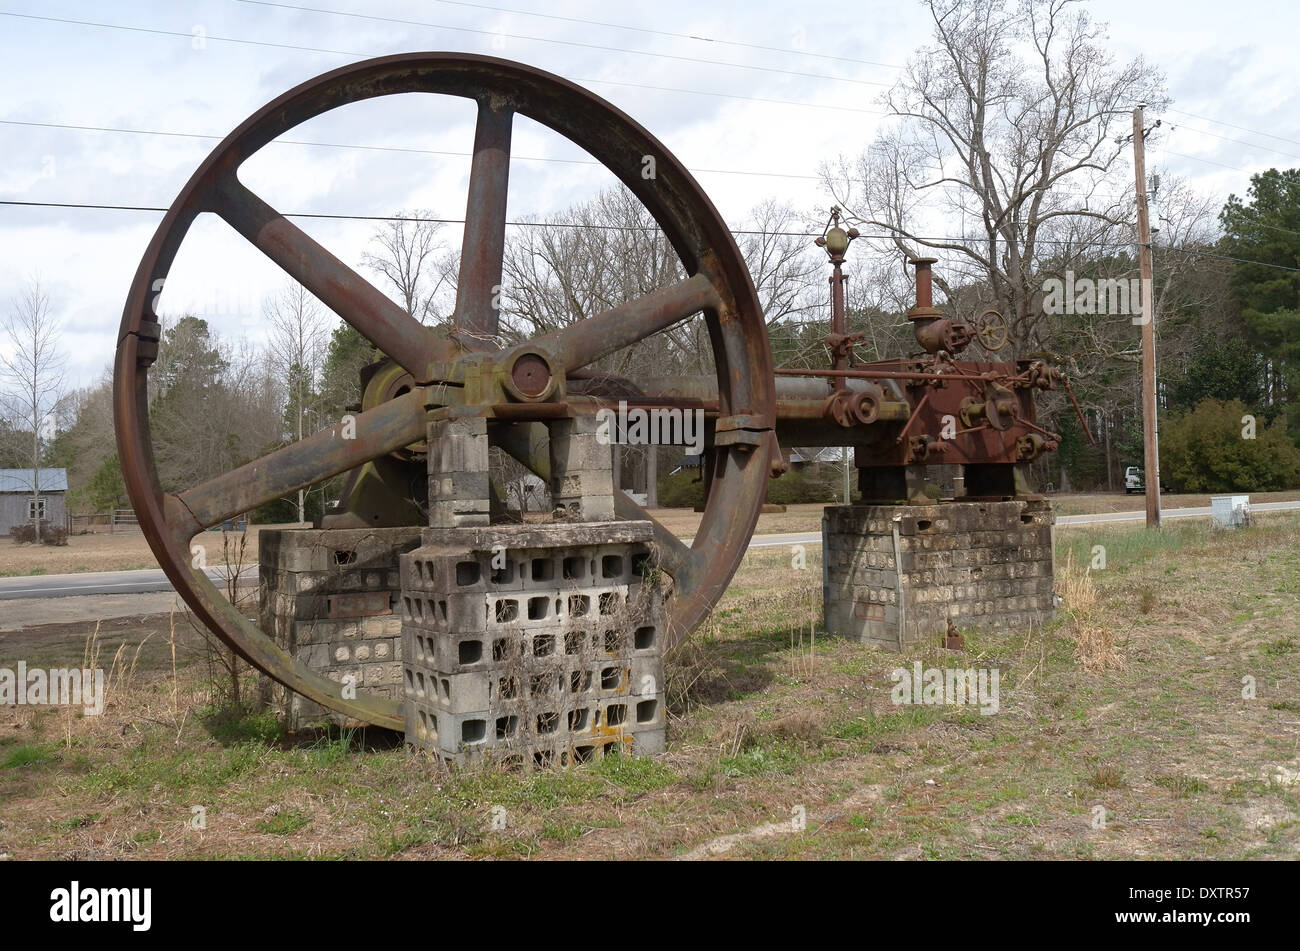 Remains of an old steam engine - Stock Image